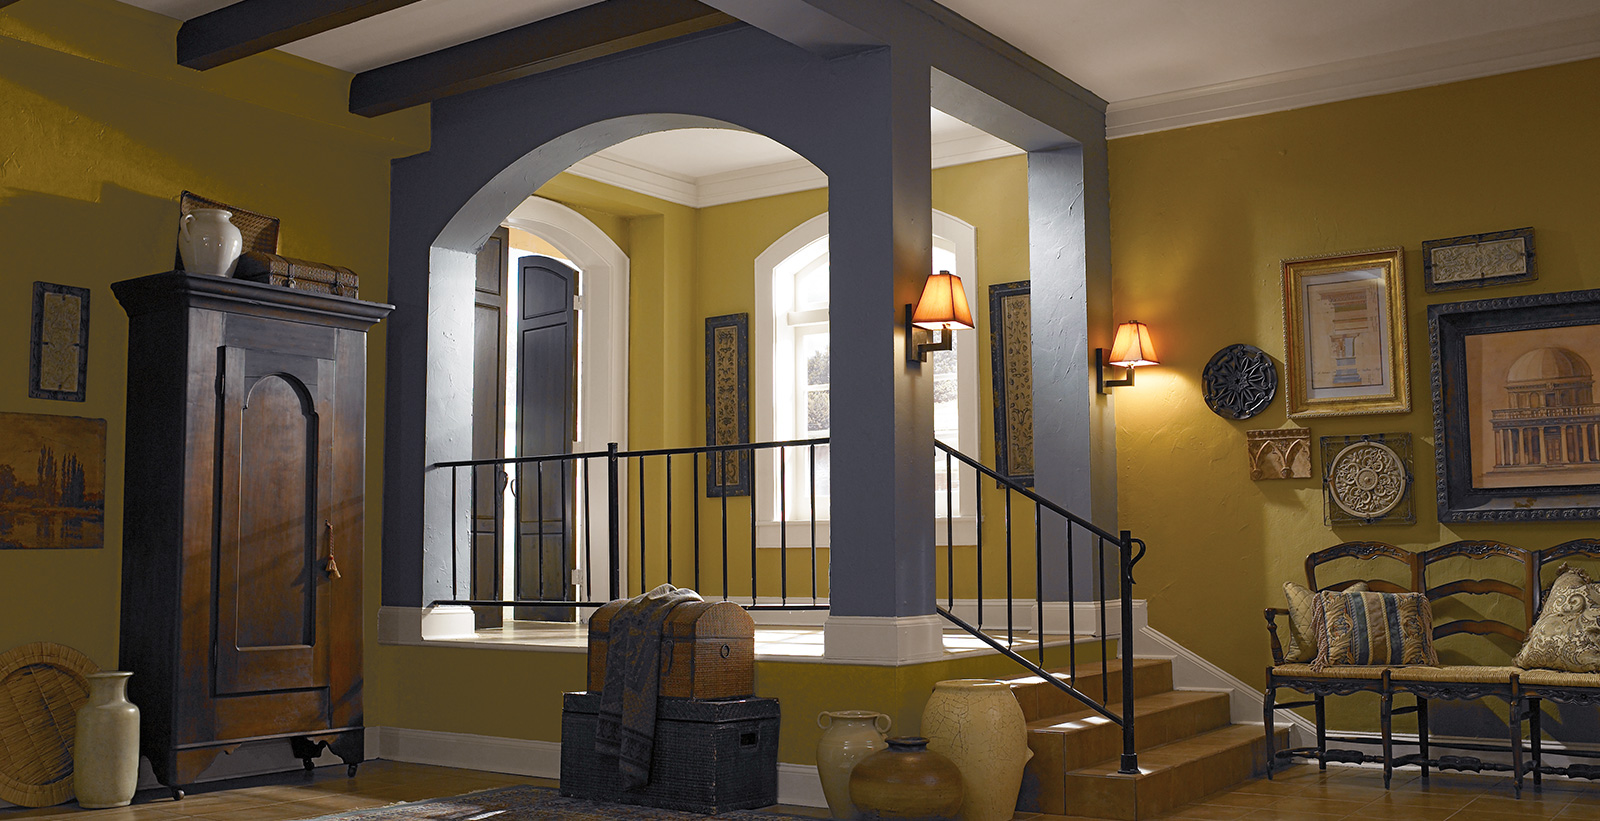 Hallway with yellow walls, blue accents, and white trim, eclectic style.